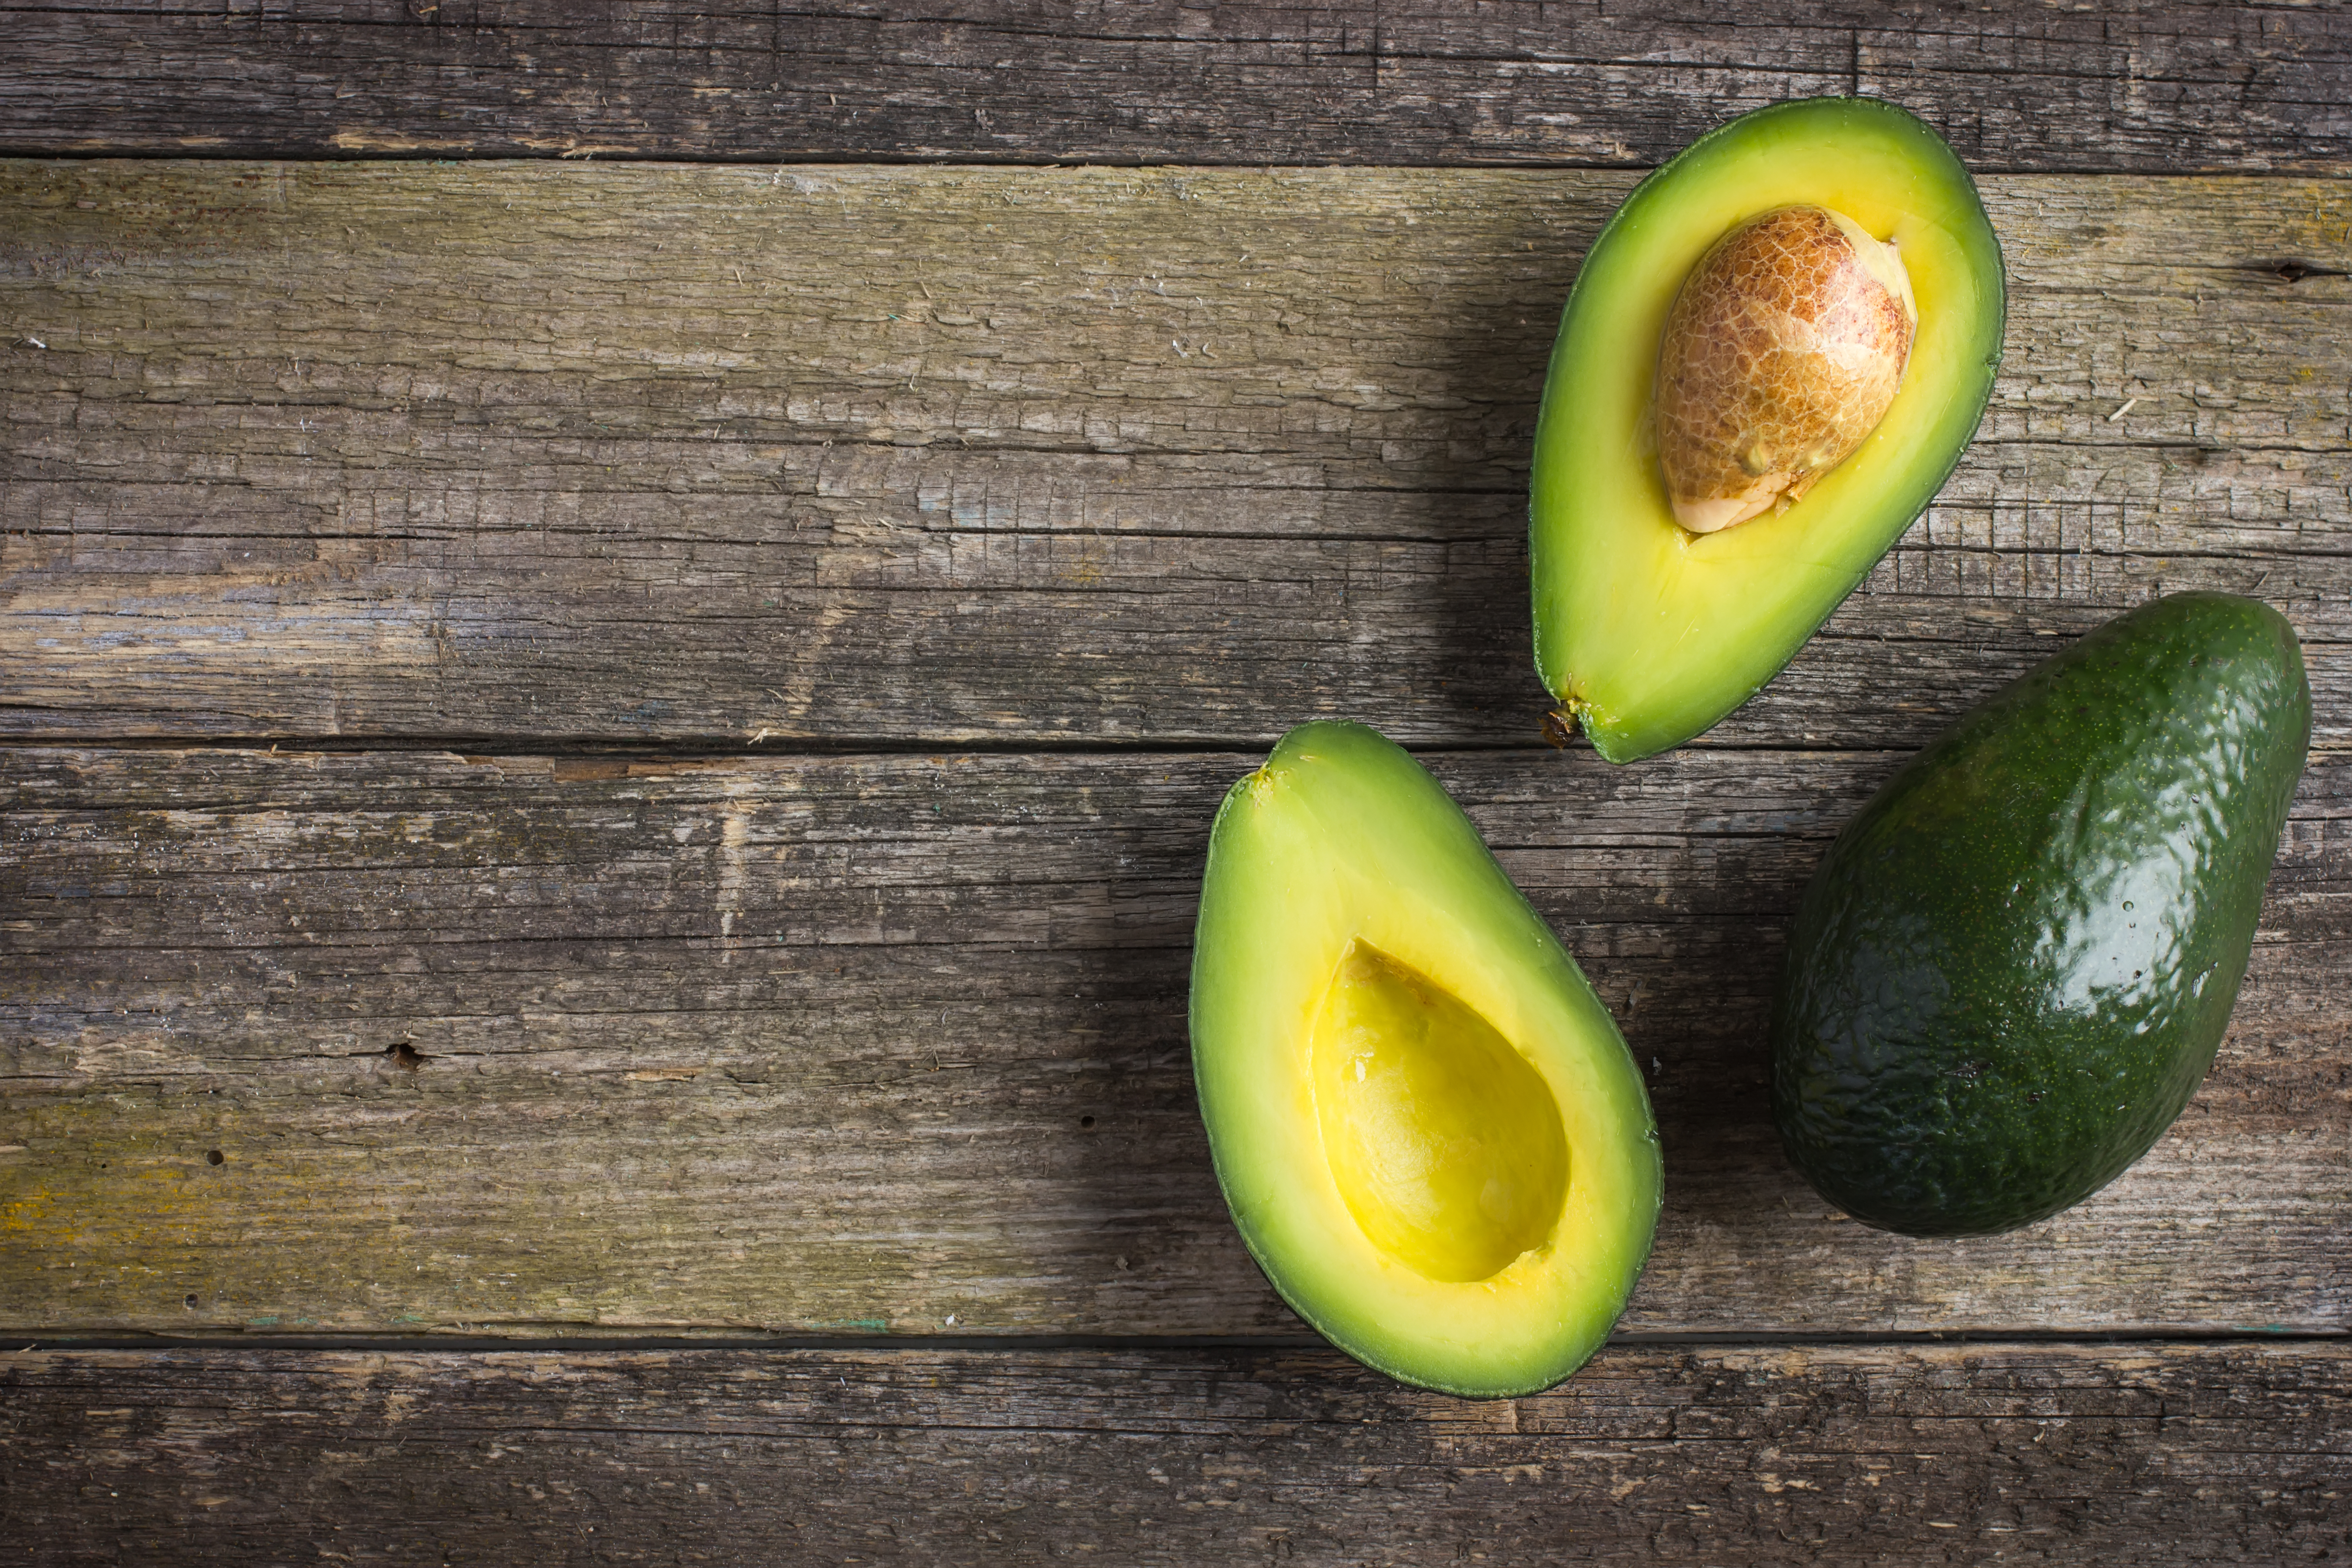 8 Easy Ways to Add Avocado to Your Meals